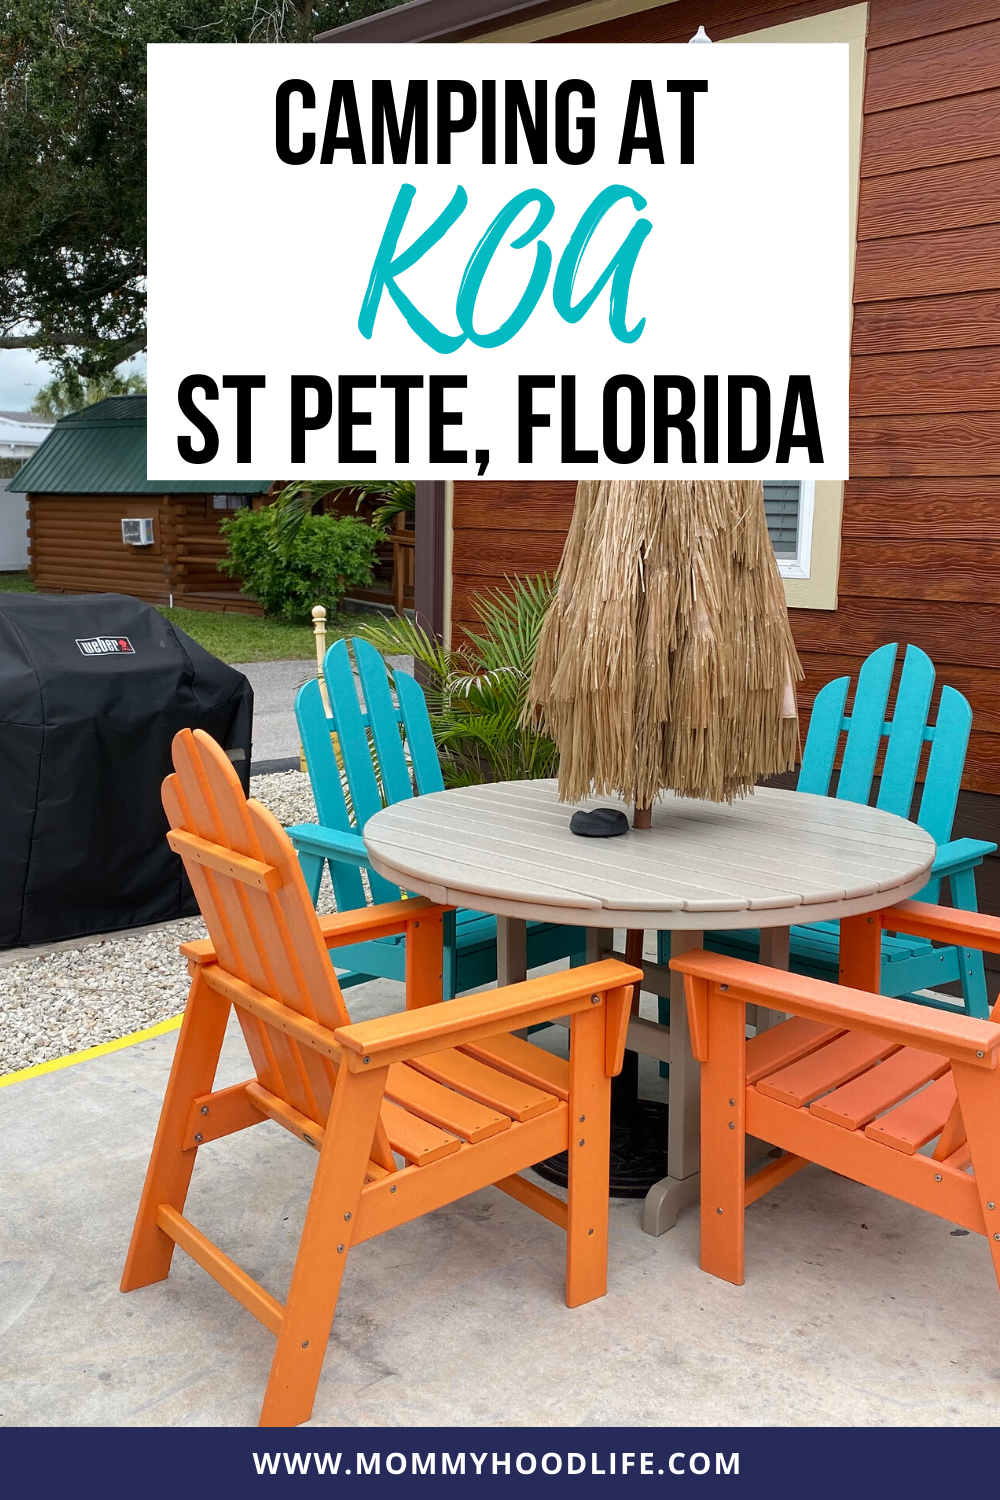 Camping at KOA St. Pete Florida